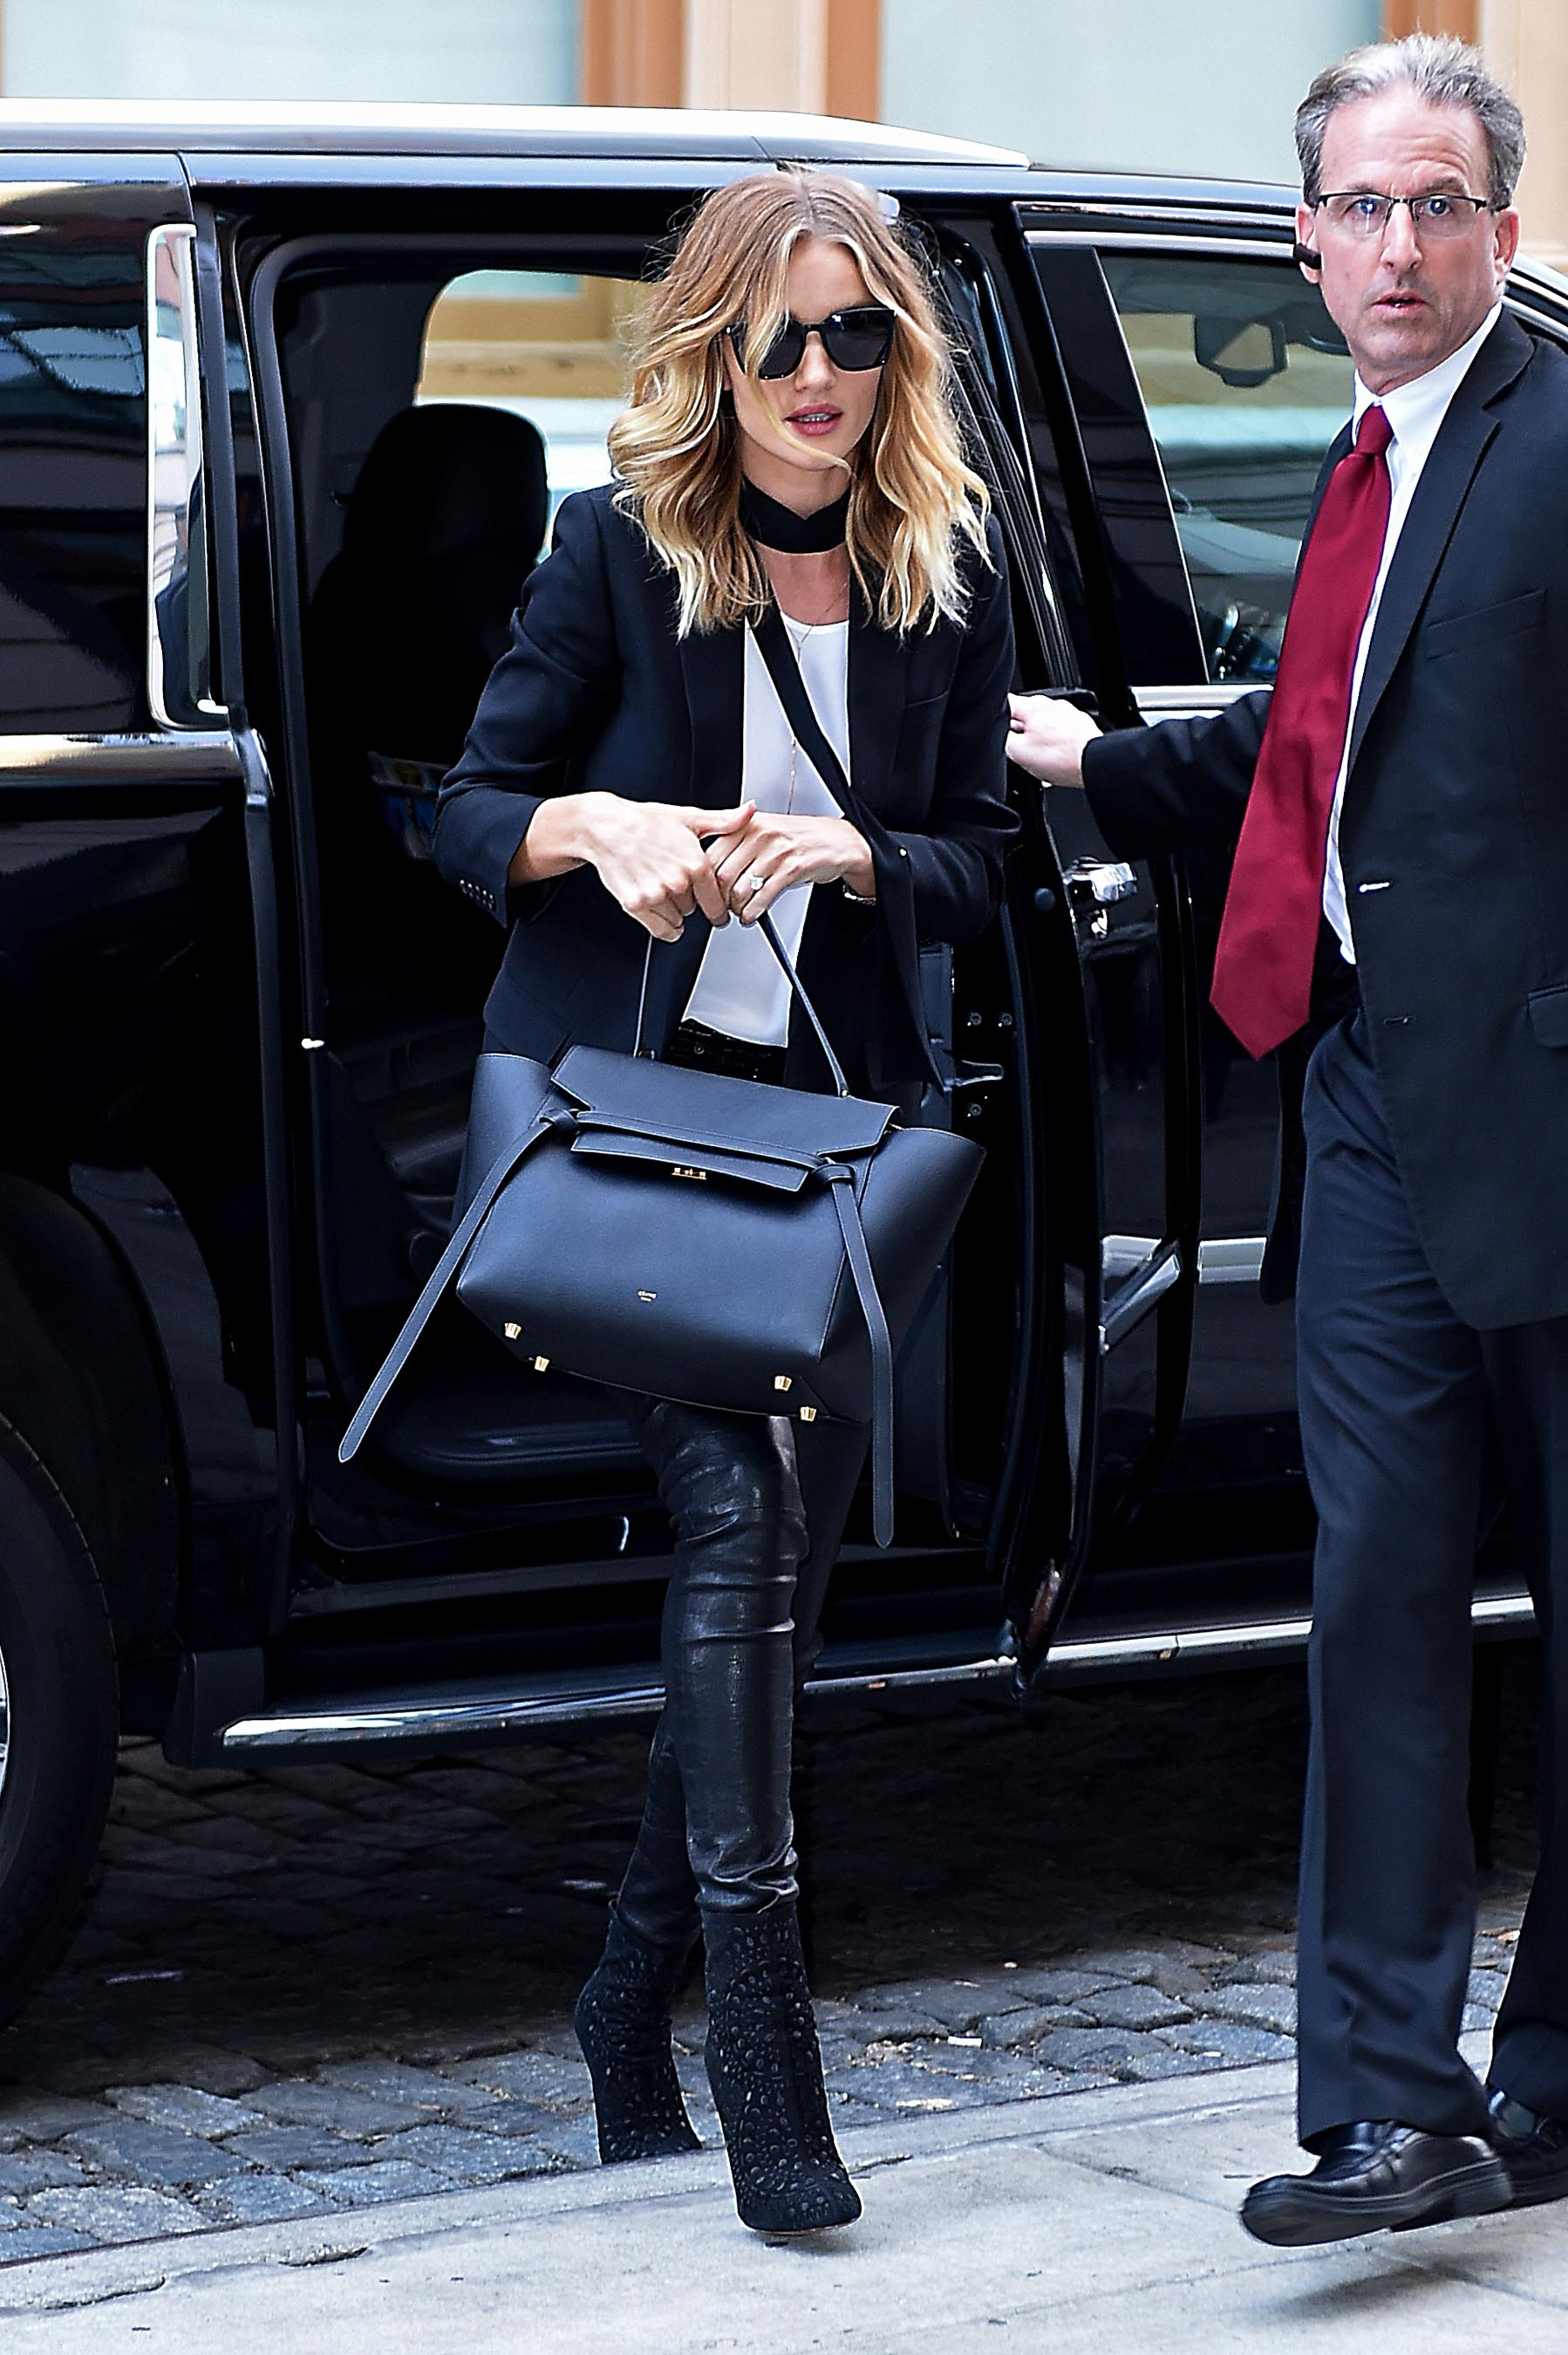 Rosie Huntington-Whiteley out in NYC